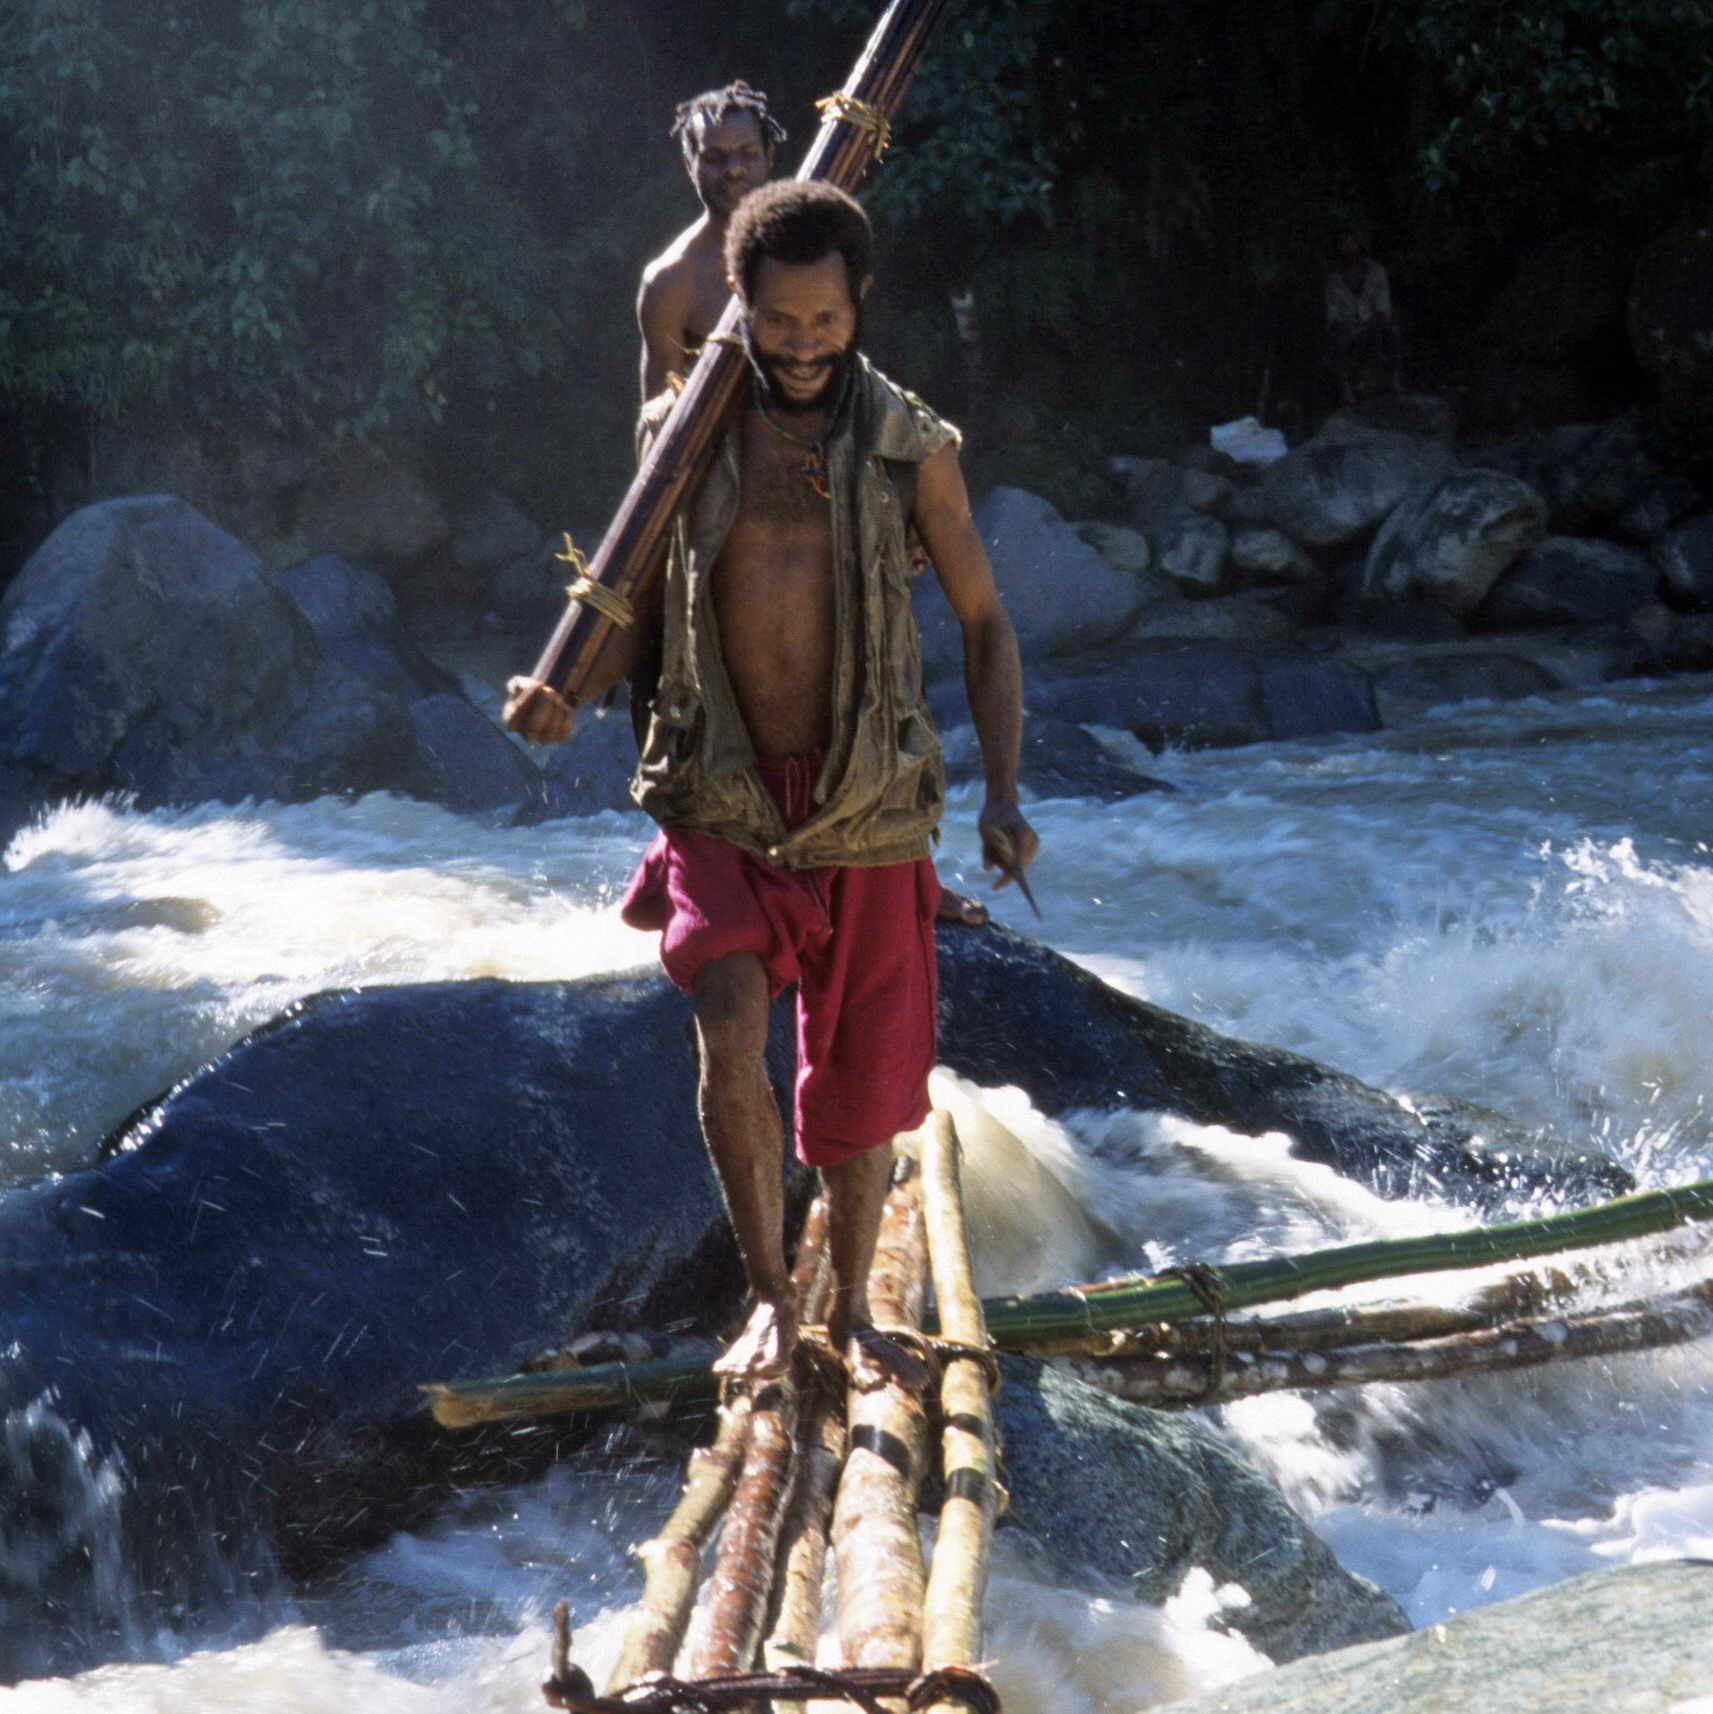 River Crossing, New Guinea Art, Oceanic Art, South Pacific Art, Tribal Art